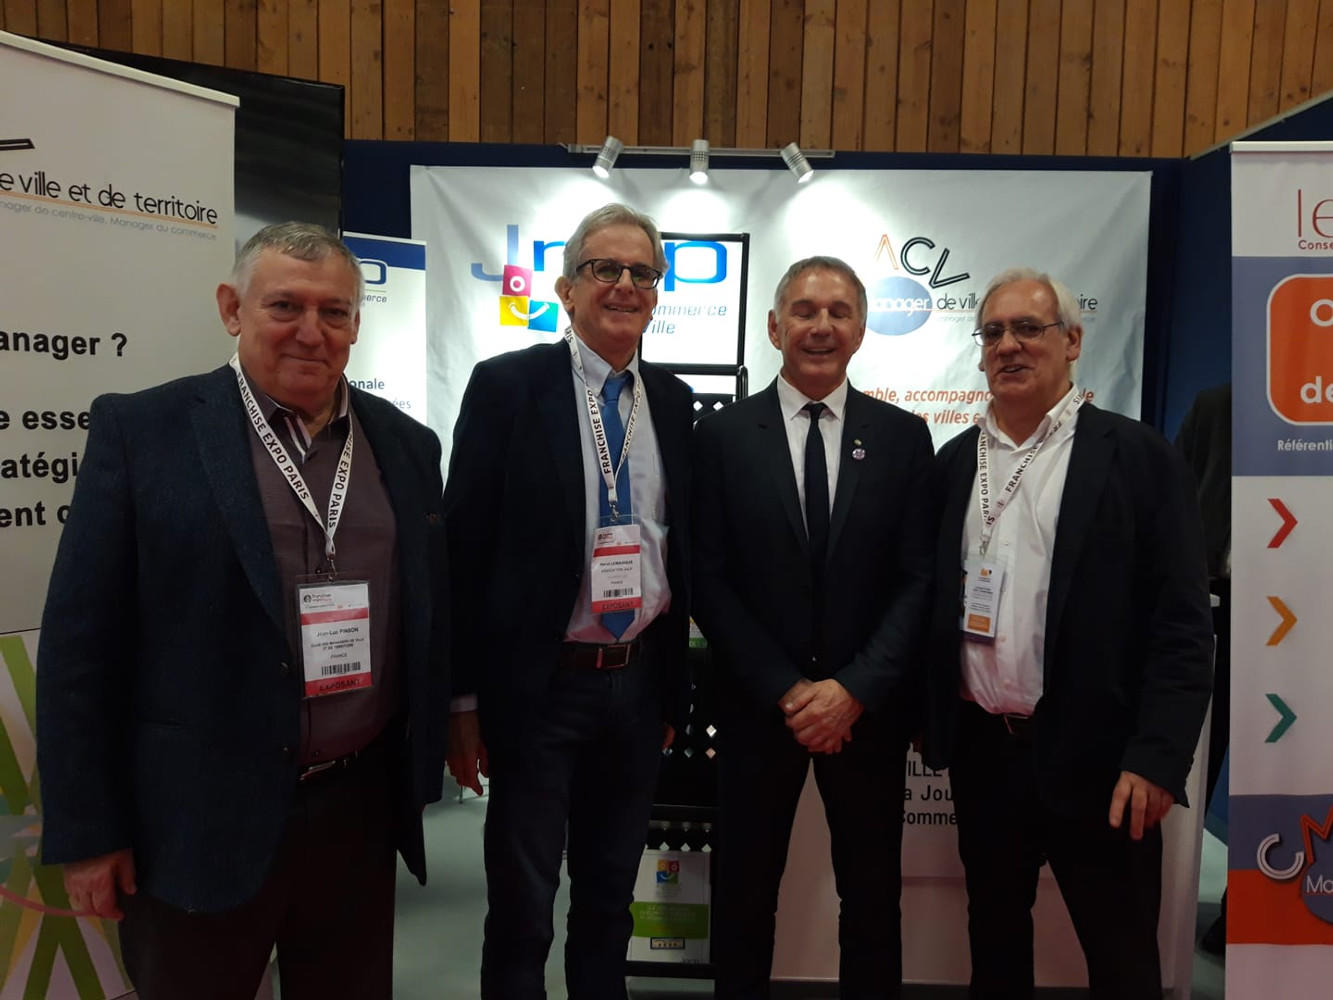 La JNCP au Salon de la Franchise 2019